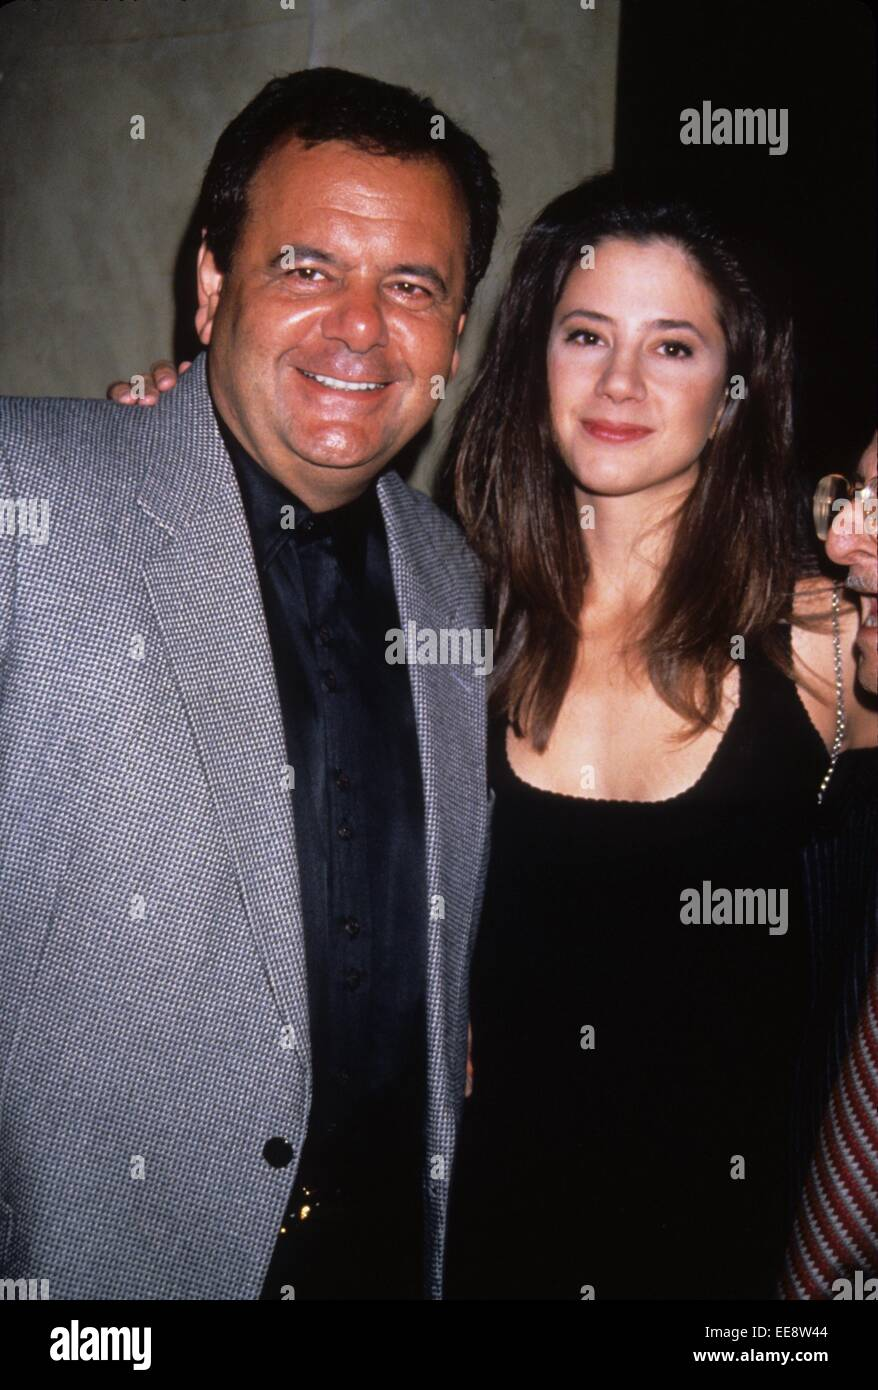 PAUL SORVINO with daughter at Amongst Friends 1993.l6041st. © Stephen Trupp/Globe Photos/ZUMA Wire/Alamy Live - Stock Image